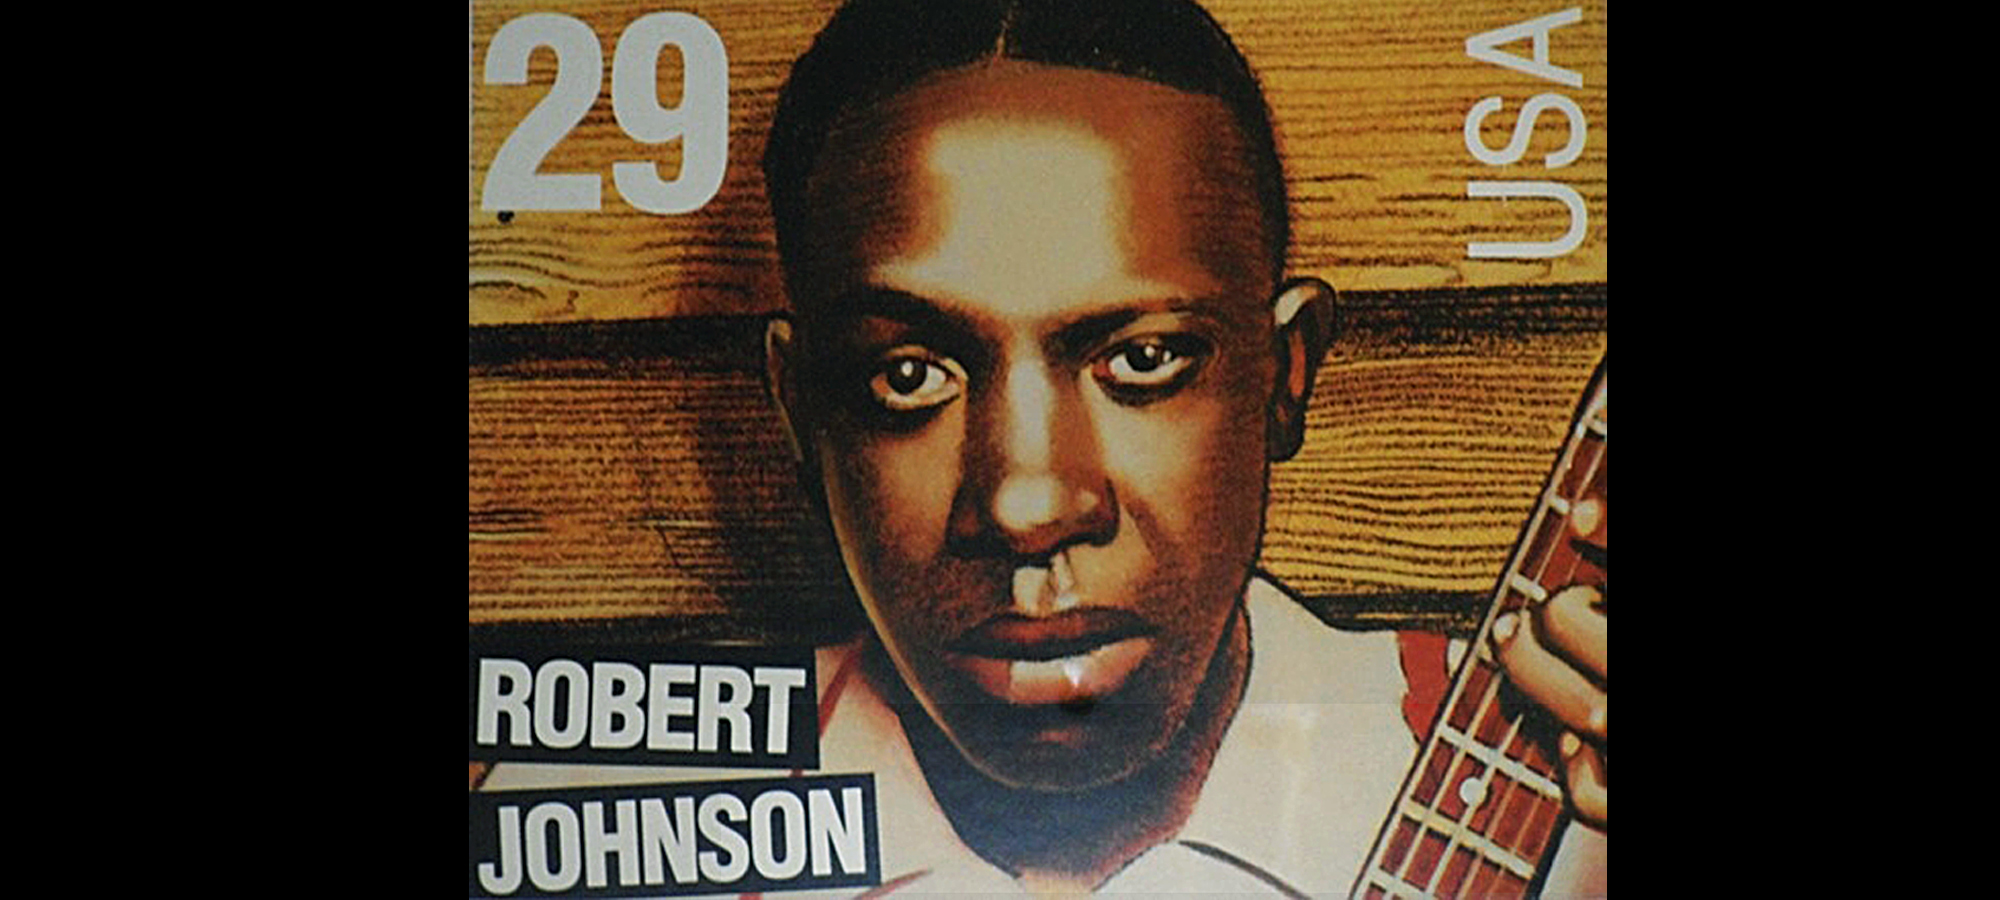 http://hipquotient.com/wp-content/uploads/2014/11/robert-johnson-thanks-main.jpg